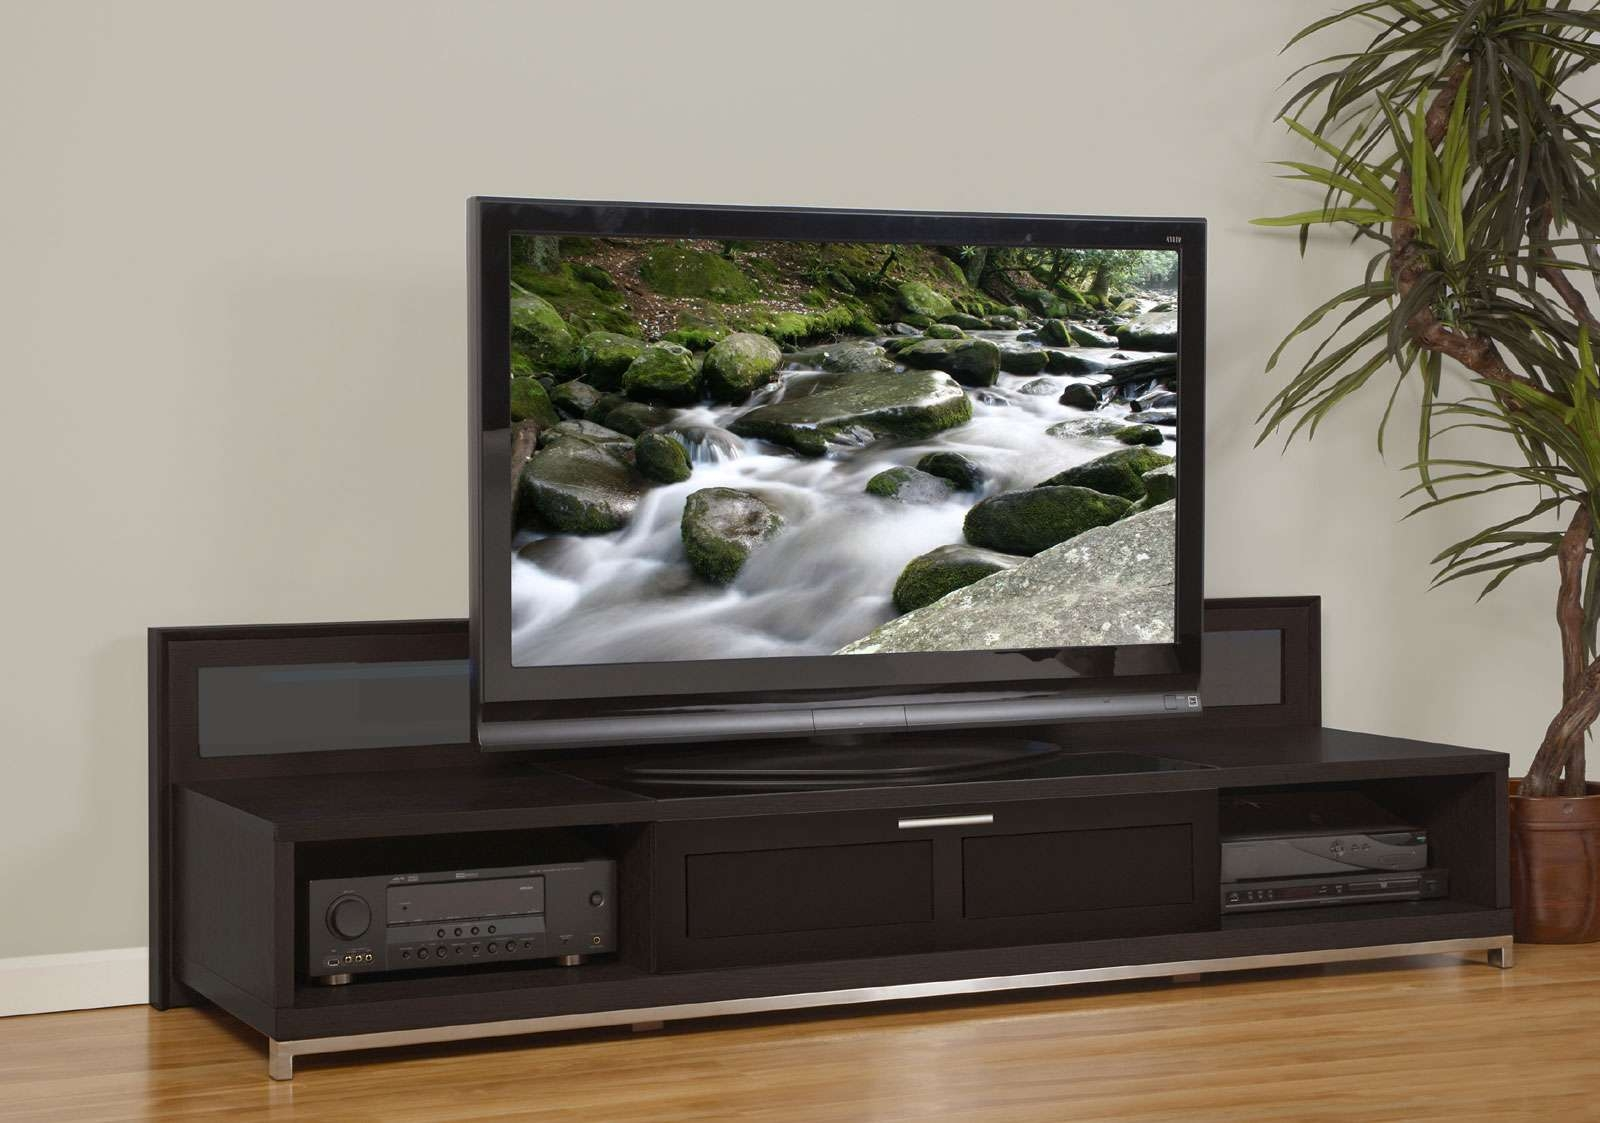 Mocca Stained Solid Wood Low Profile Tv Stand With Stainless Steel Regarding Modern Low Profile Tv Stands (View 11 of 15)